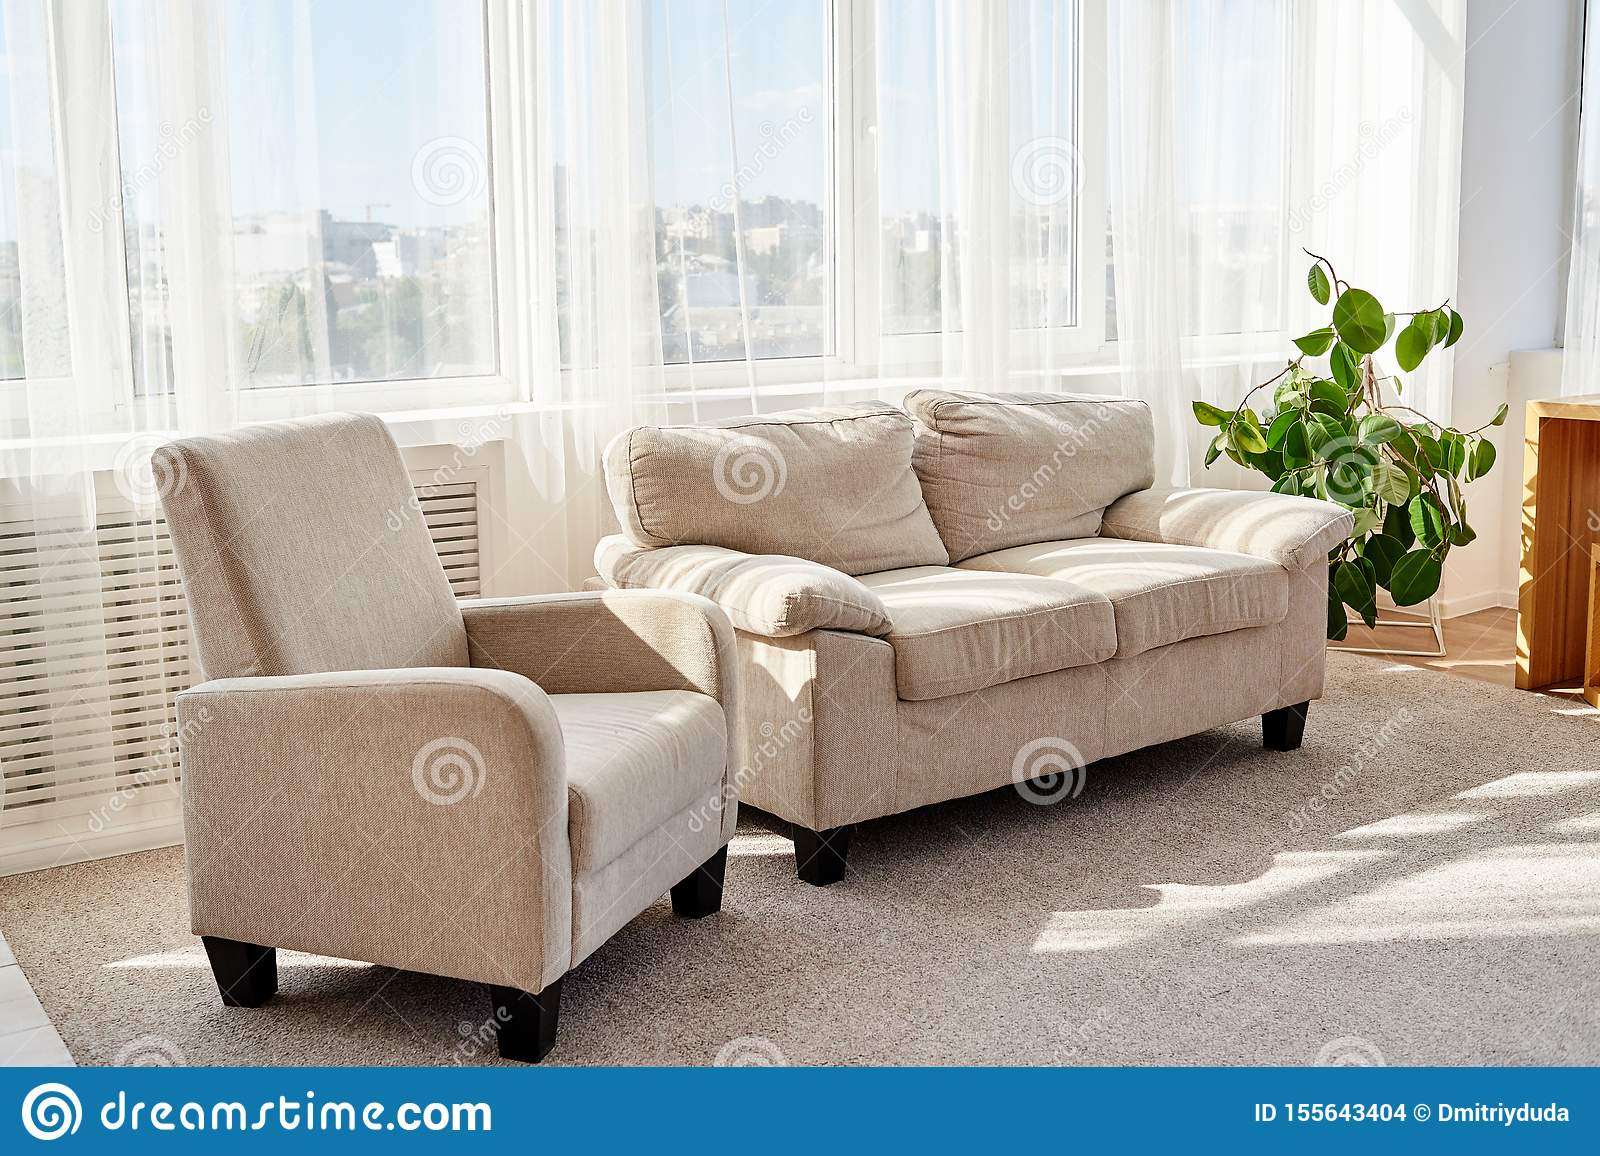 Stylish Modern Living Room With Comfortable Beige Sofa Armchair And Small Green Tree On Floor Living Room Interior Stock Photo Image Of Wooden Pillow 155643404